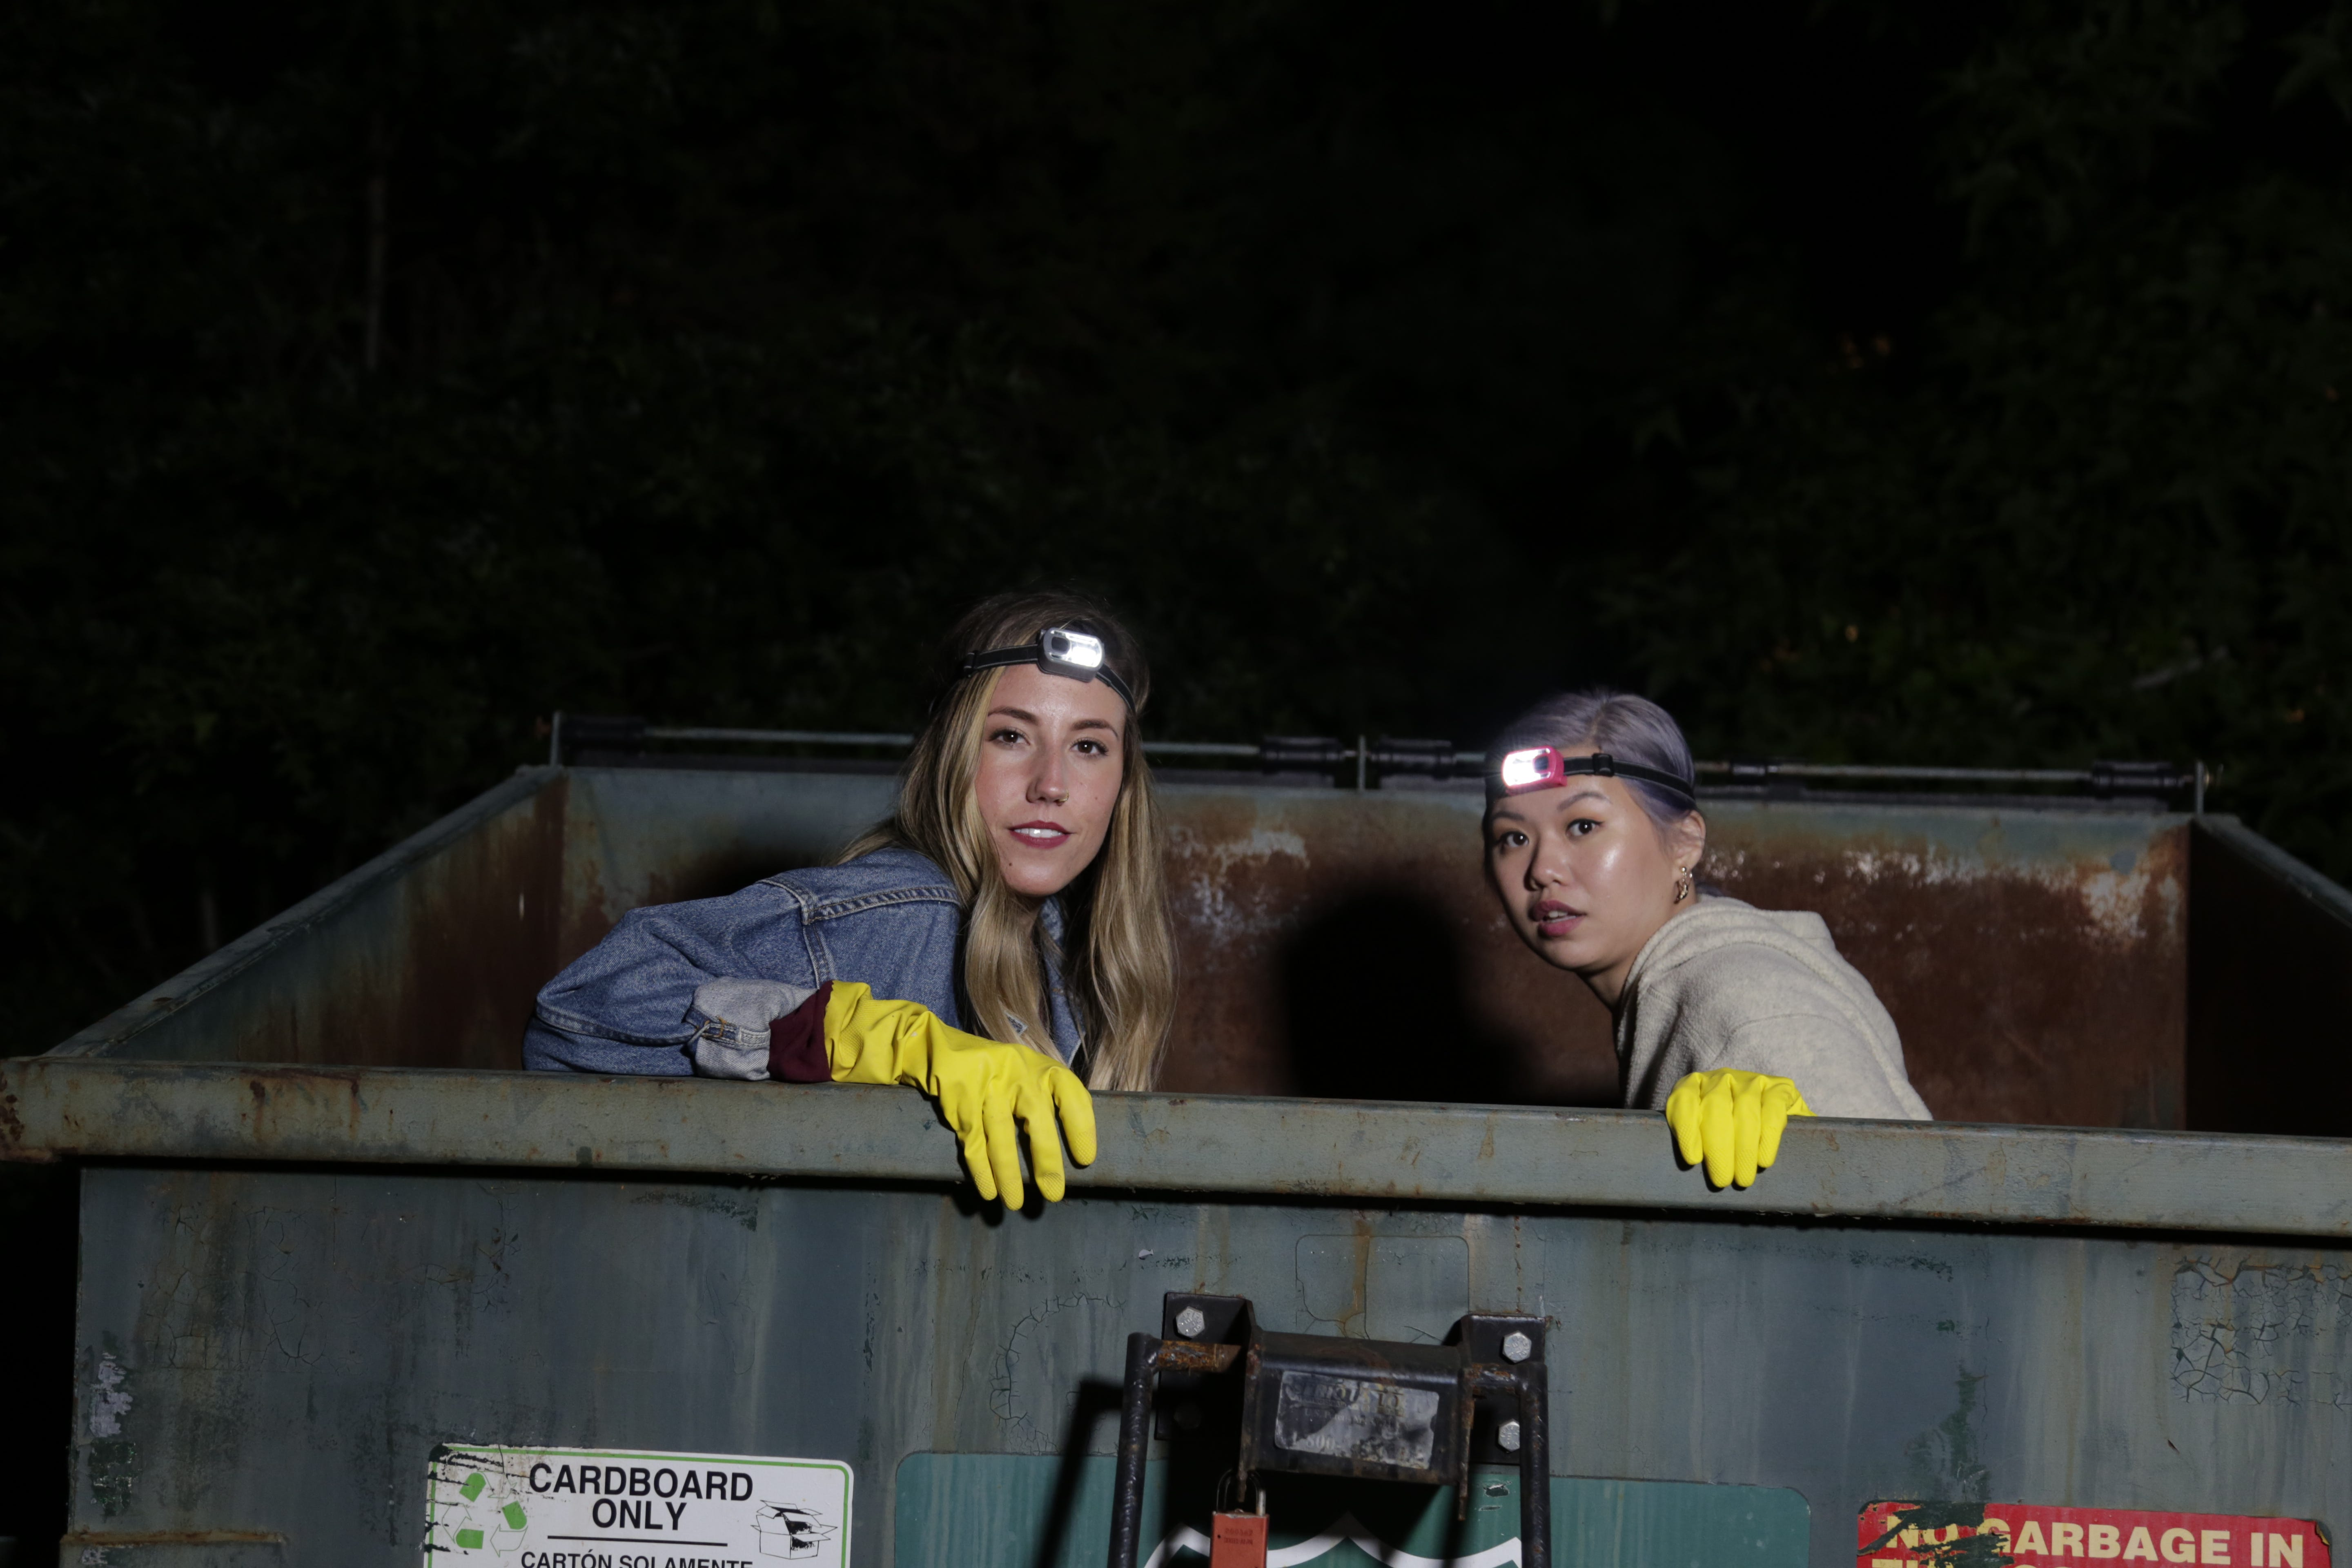 The legal aspects one needs to know about dumpster diving